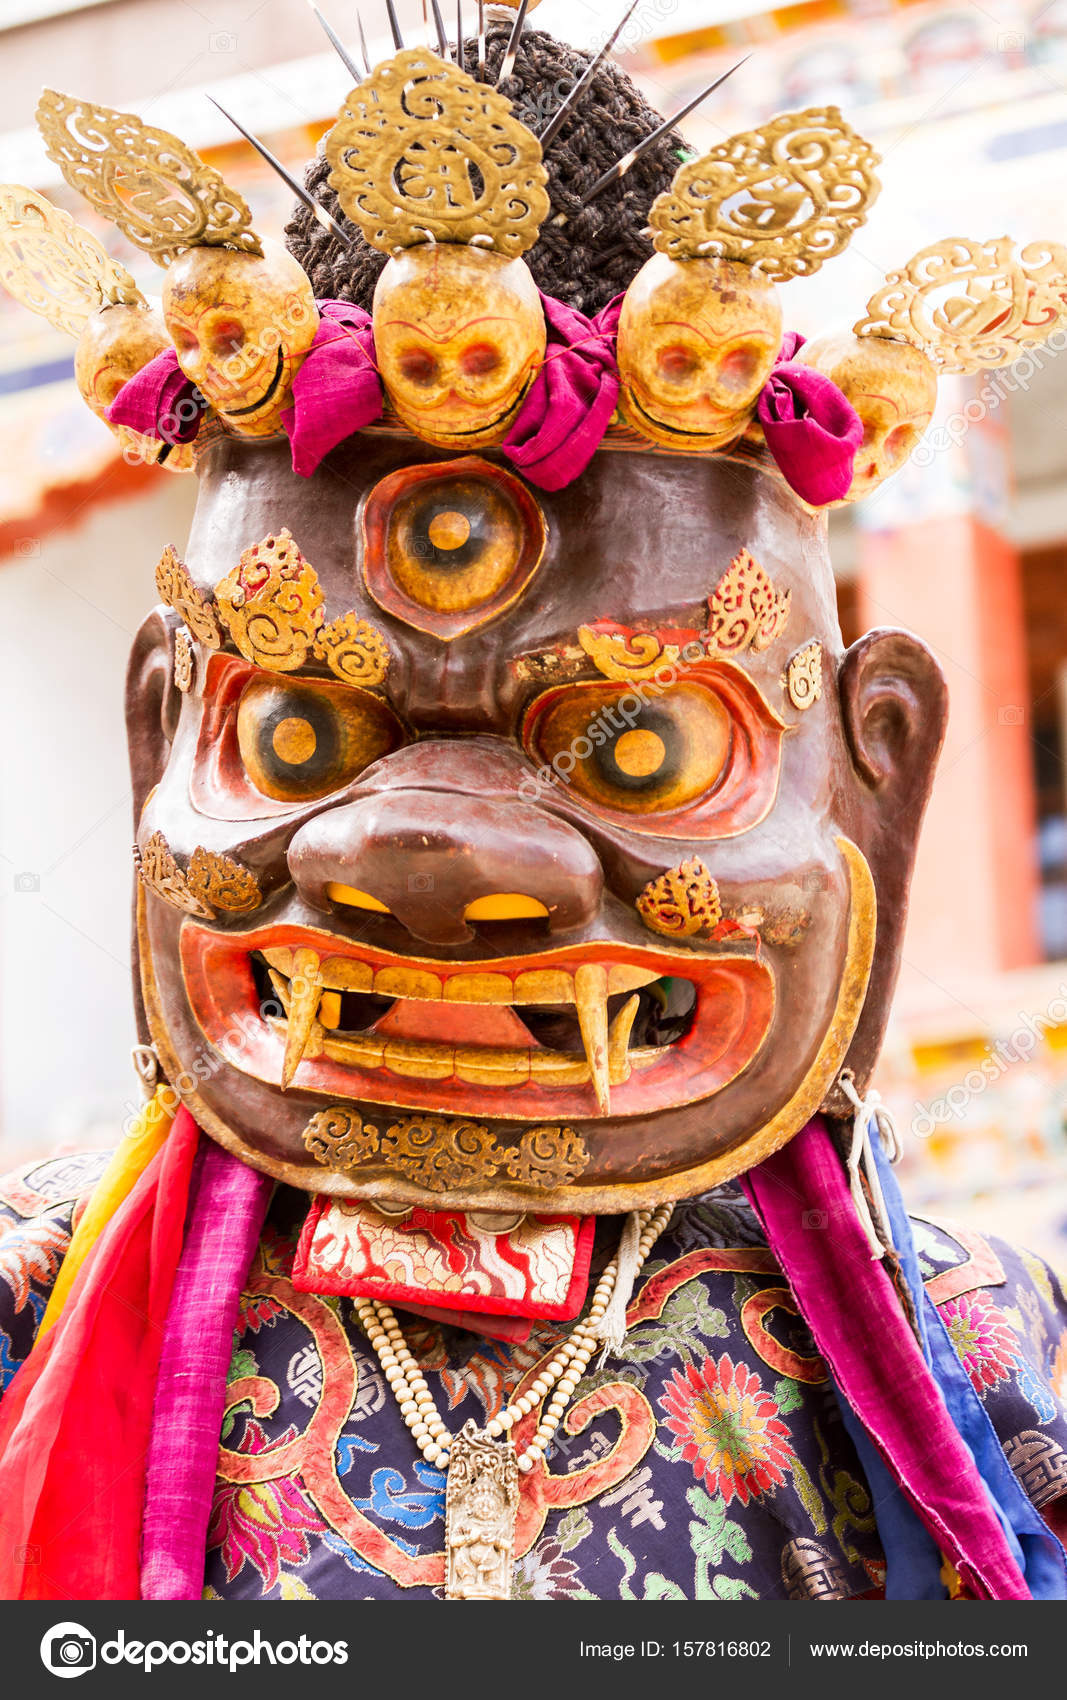 41ec82d91 Unidentified Monk Performs Religious Masked Costumed Mystery Dance Tibetan  Buddhism — Stock Photo